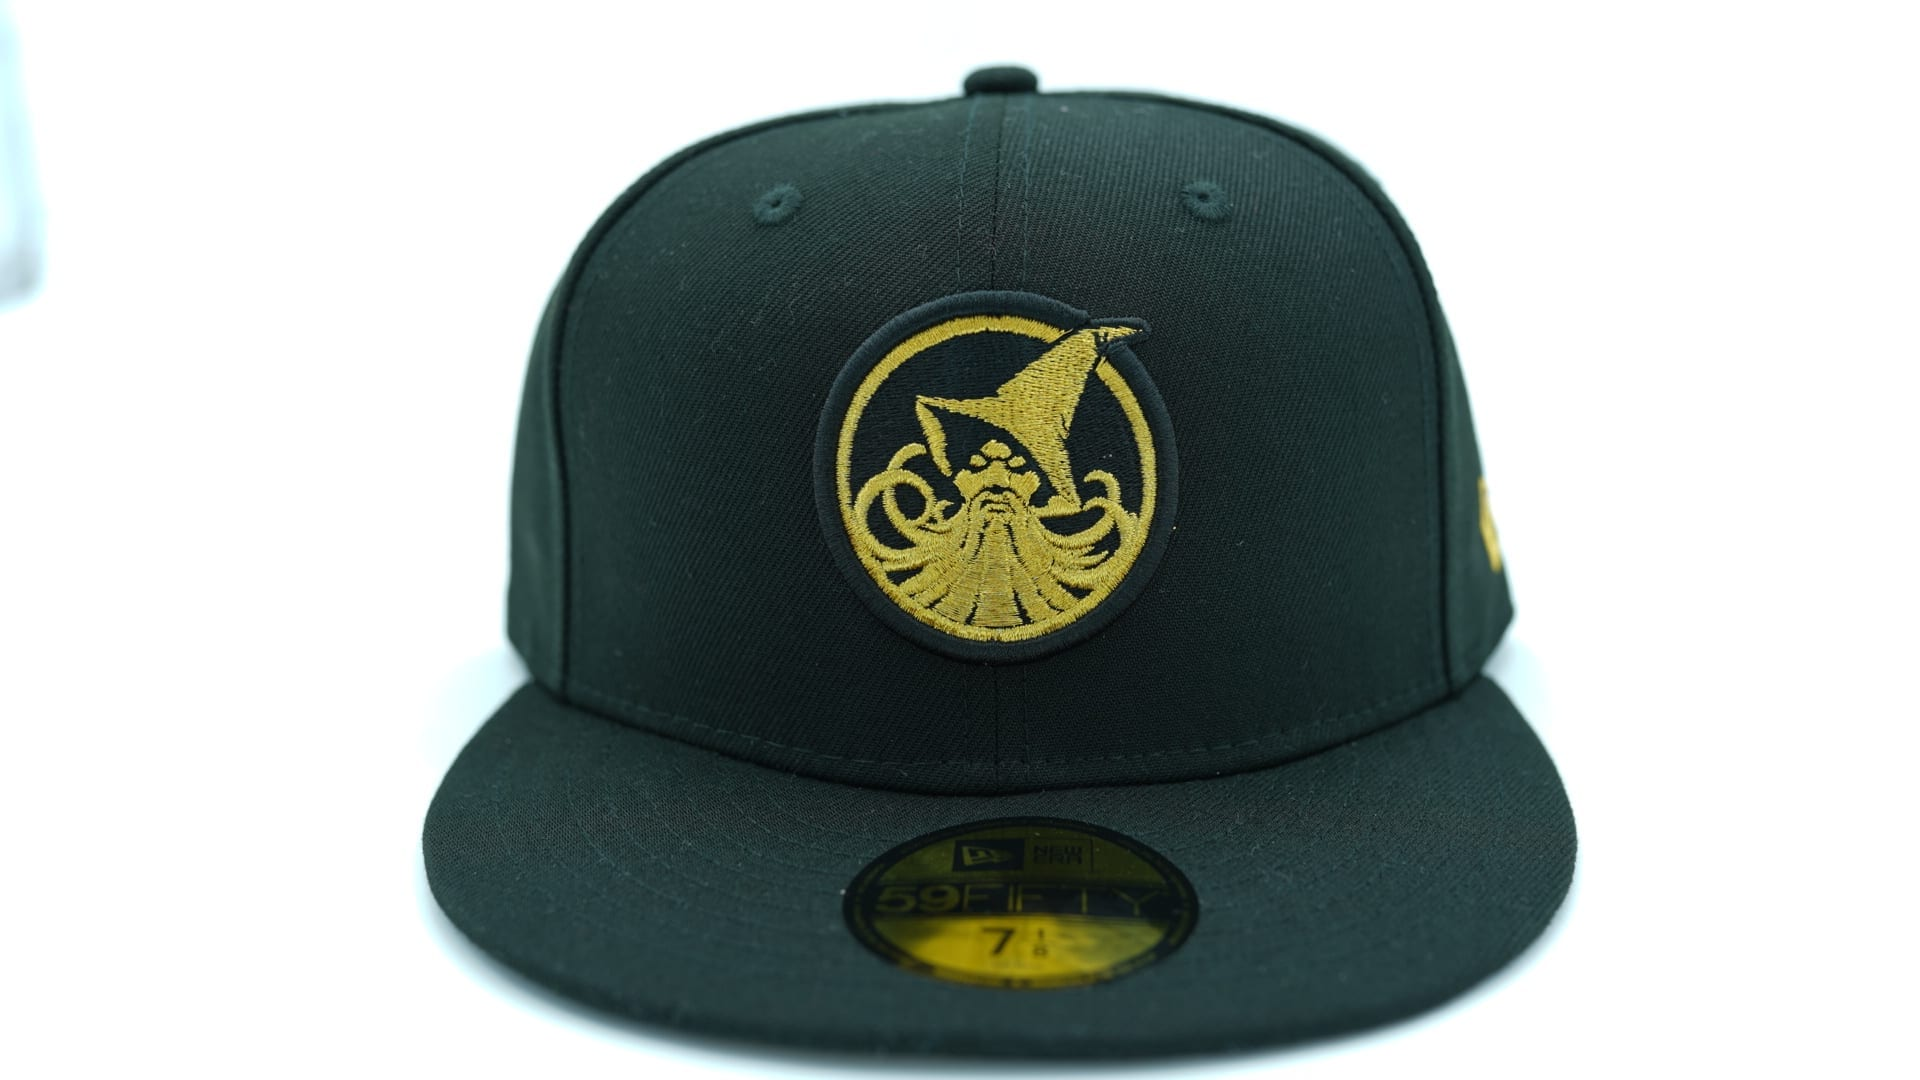 just-fitteds-x-new-era-59fifty-fitted-baseball-cap_1